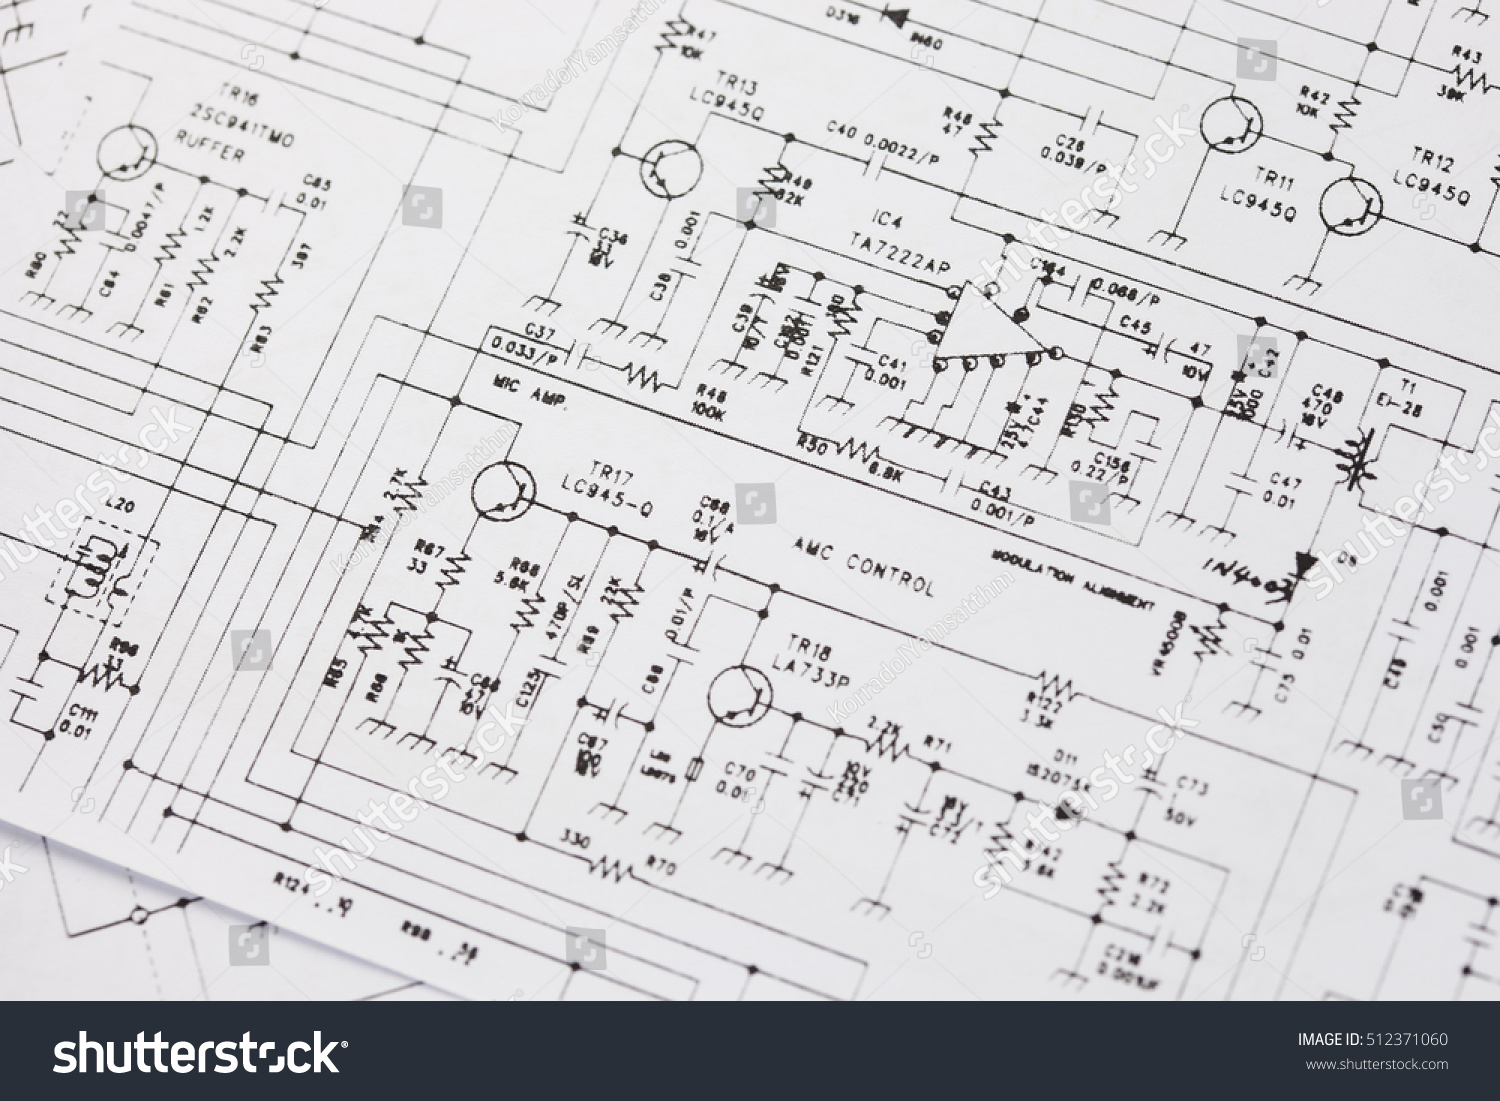 Electronics Engineering Drawing Circuit Schematic Stock Photo ...